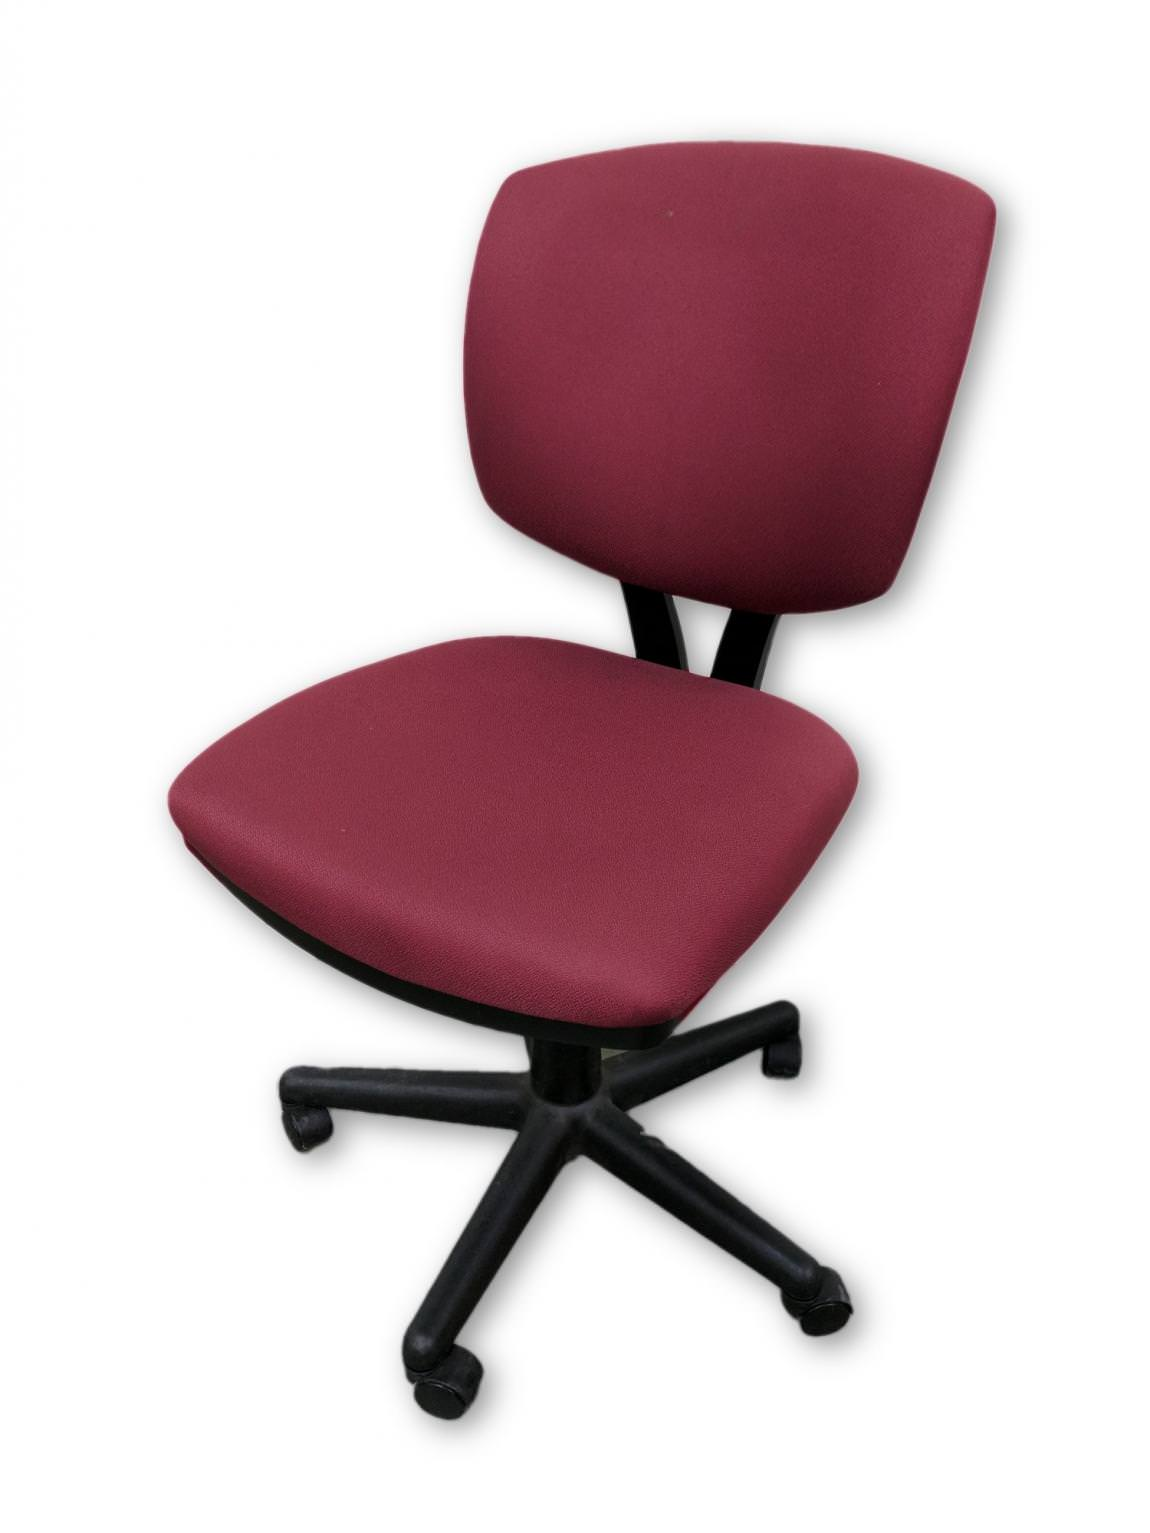 rolling chair accessories in chennai step stool images of red hon office chairs